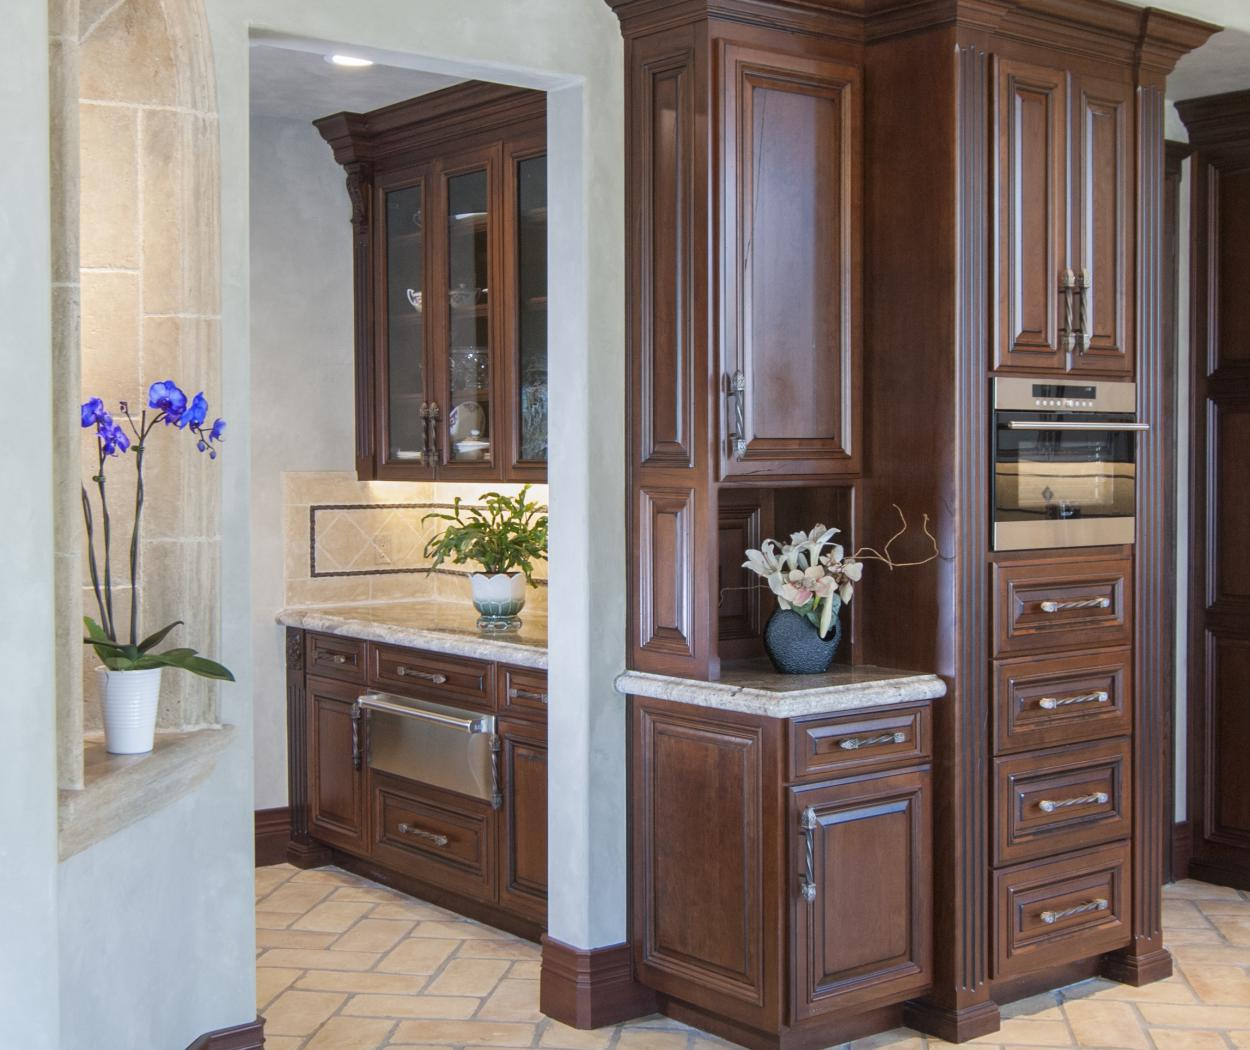 Traditional Kitchen with Beautiful Glass Doors, Granite Counter Tops and Stainless Steel Appliances